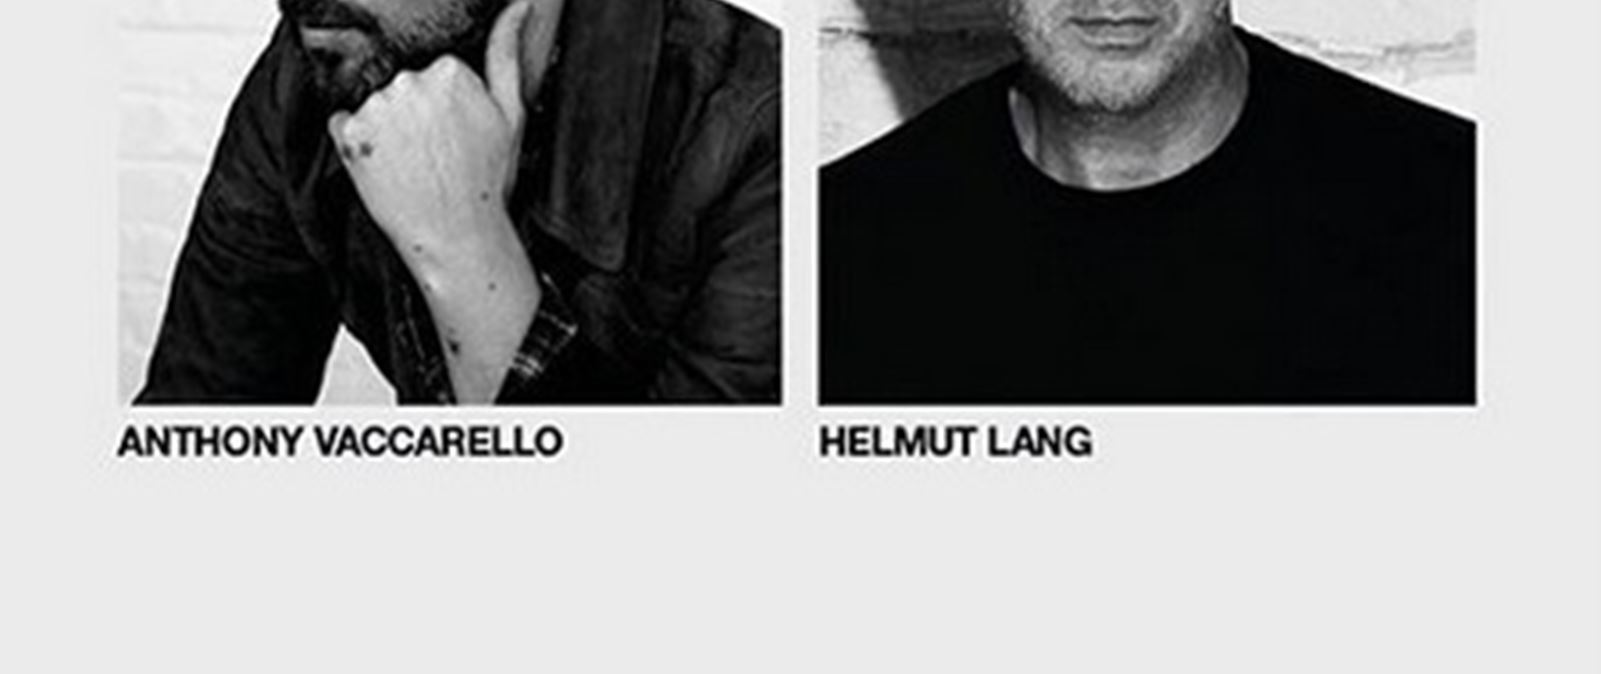 Helmut Lang x Anthony Vaccarello | Μία συνεργασία που οδήγησε σε έργα τέχνης